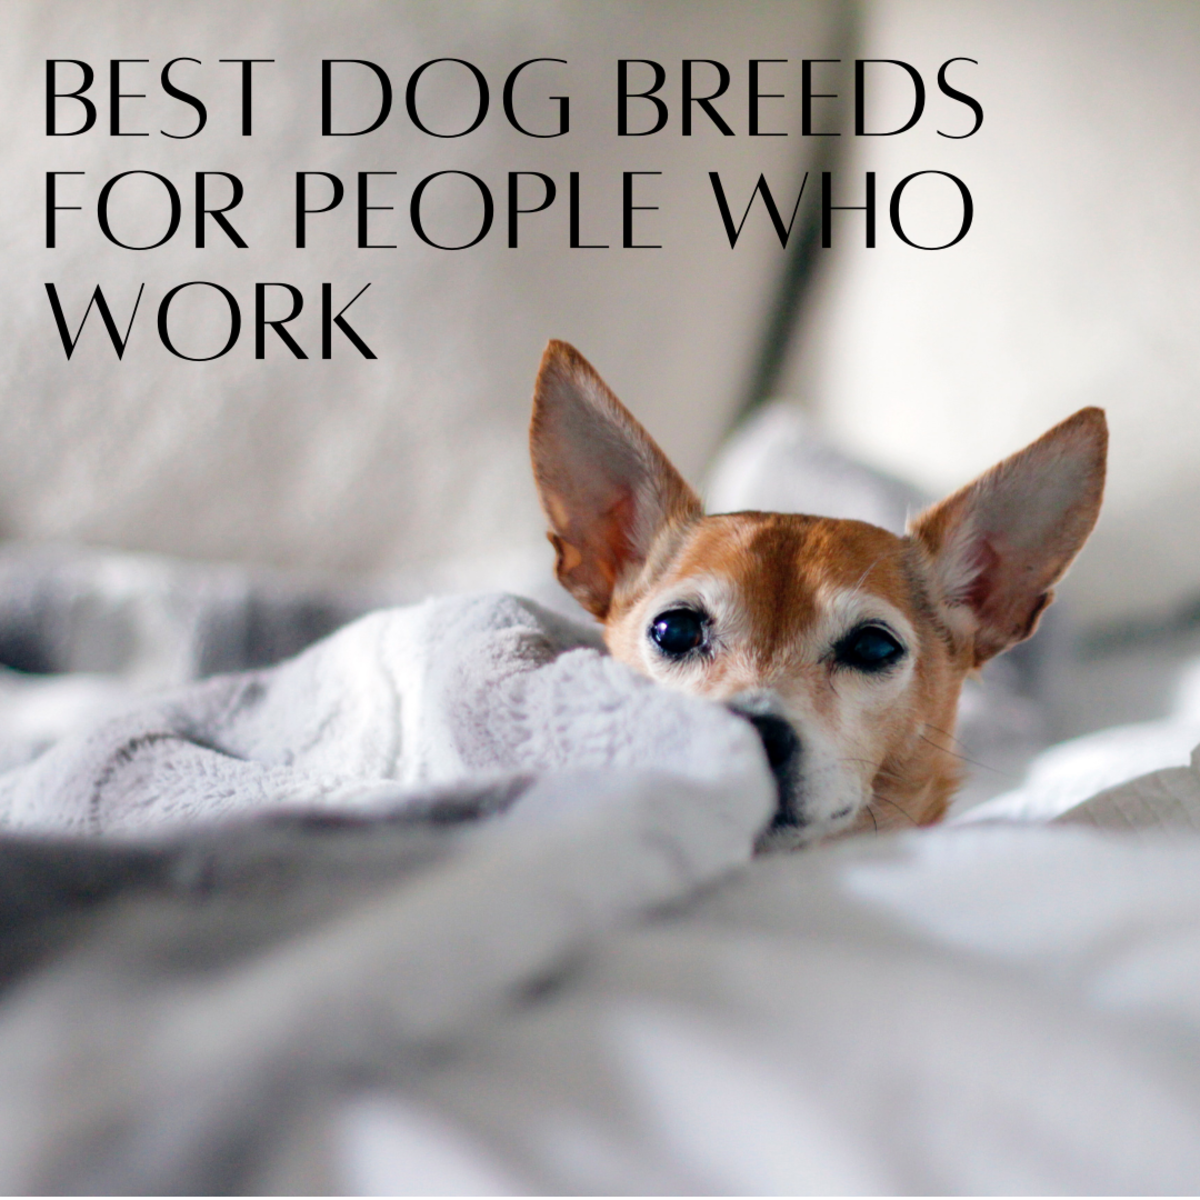 The 7 Best Dog Breeds For Someone Who Works All Day Pethelpful By Fellow Animal Lovers And Experts